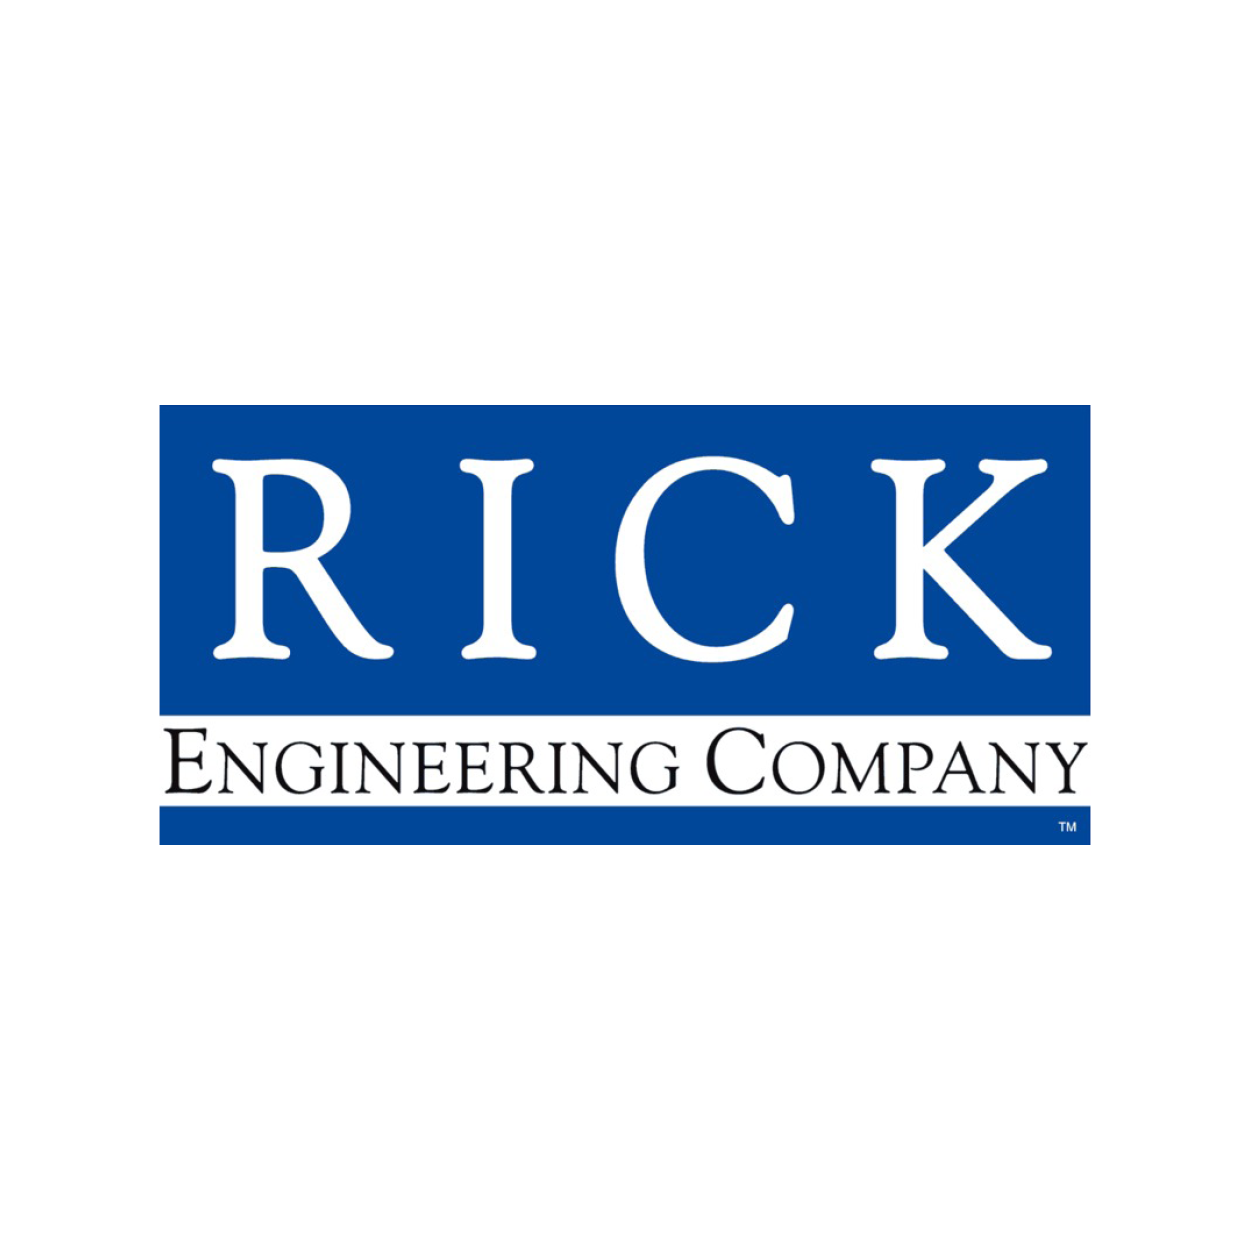 Rick Engineering Company